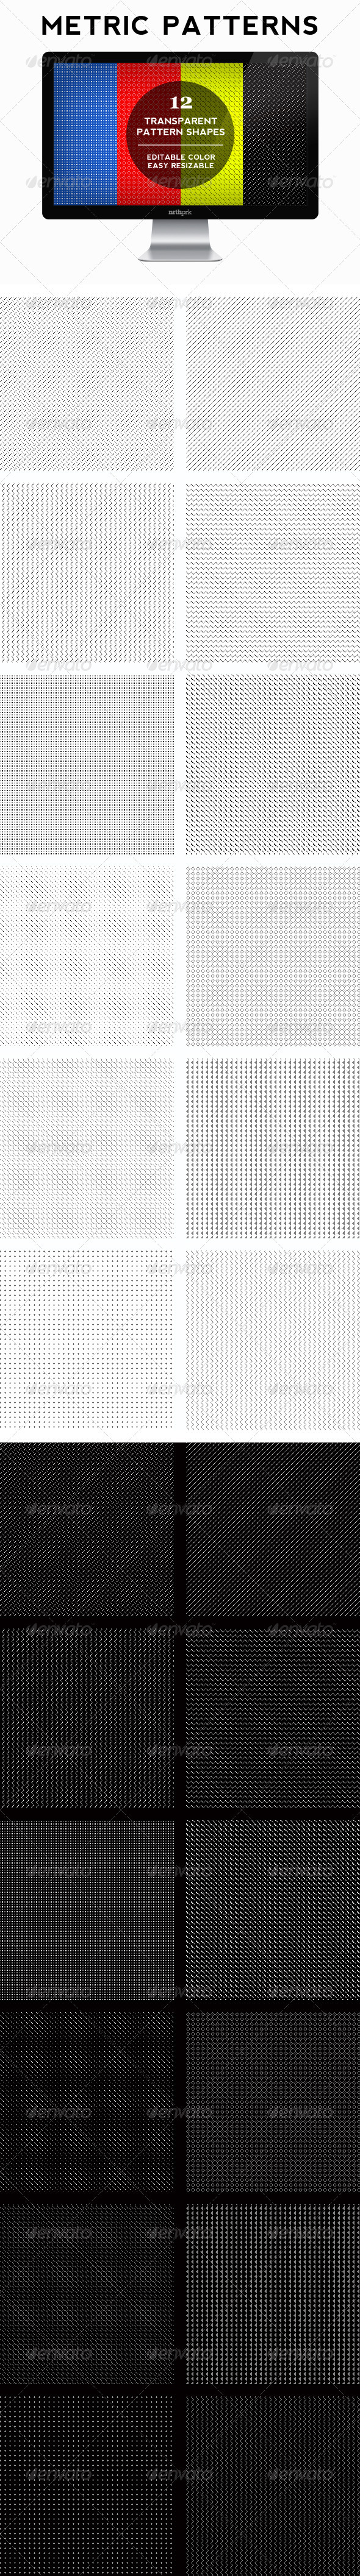 Metric Patterns Set - Miscellaneous Textures / Fills / Patterns